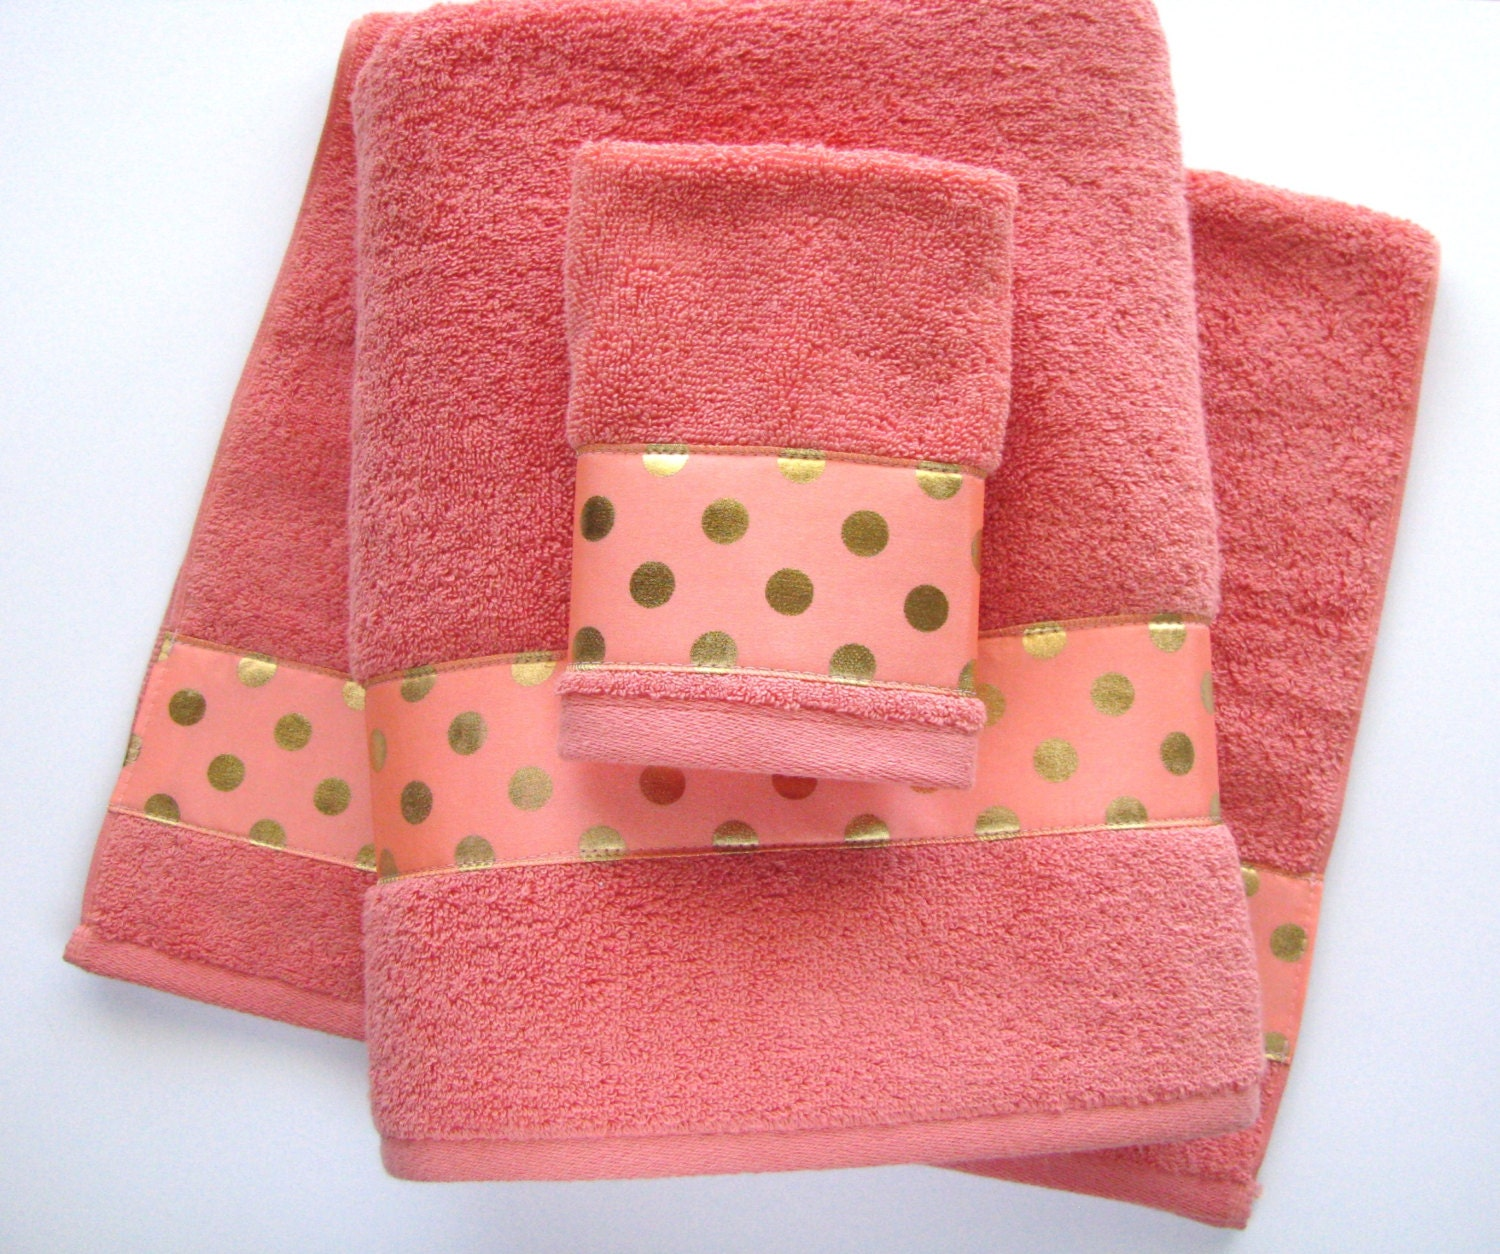 Coral gold towels hand towels bath towels custom by augustave for Pink and gold bathroom accessories